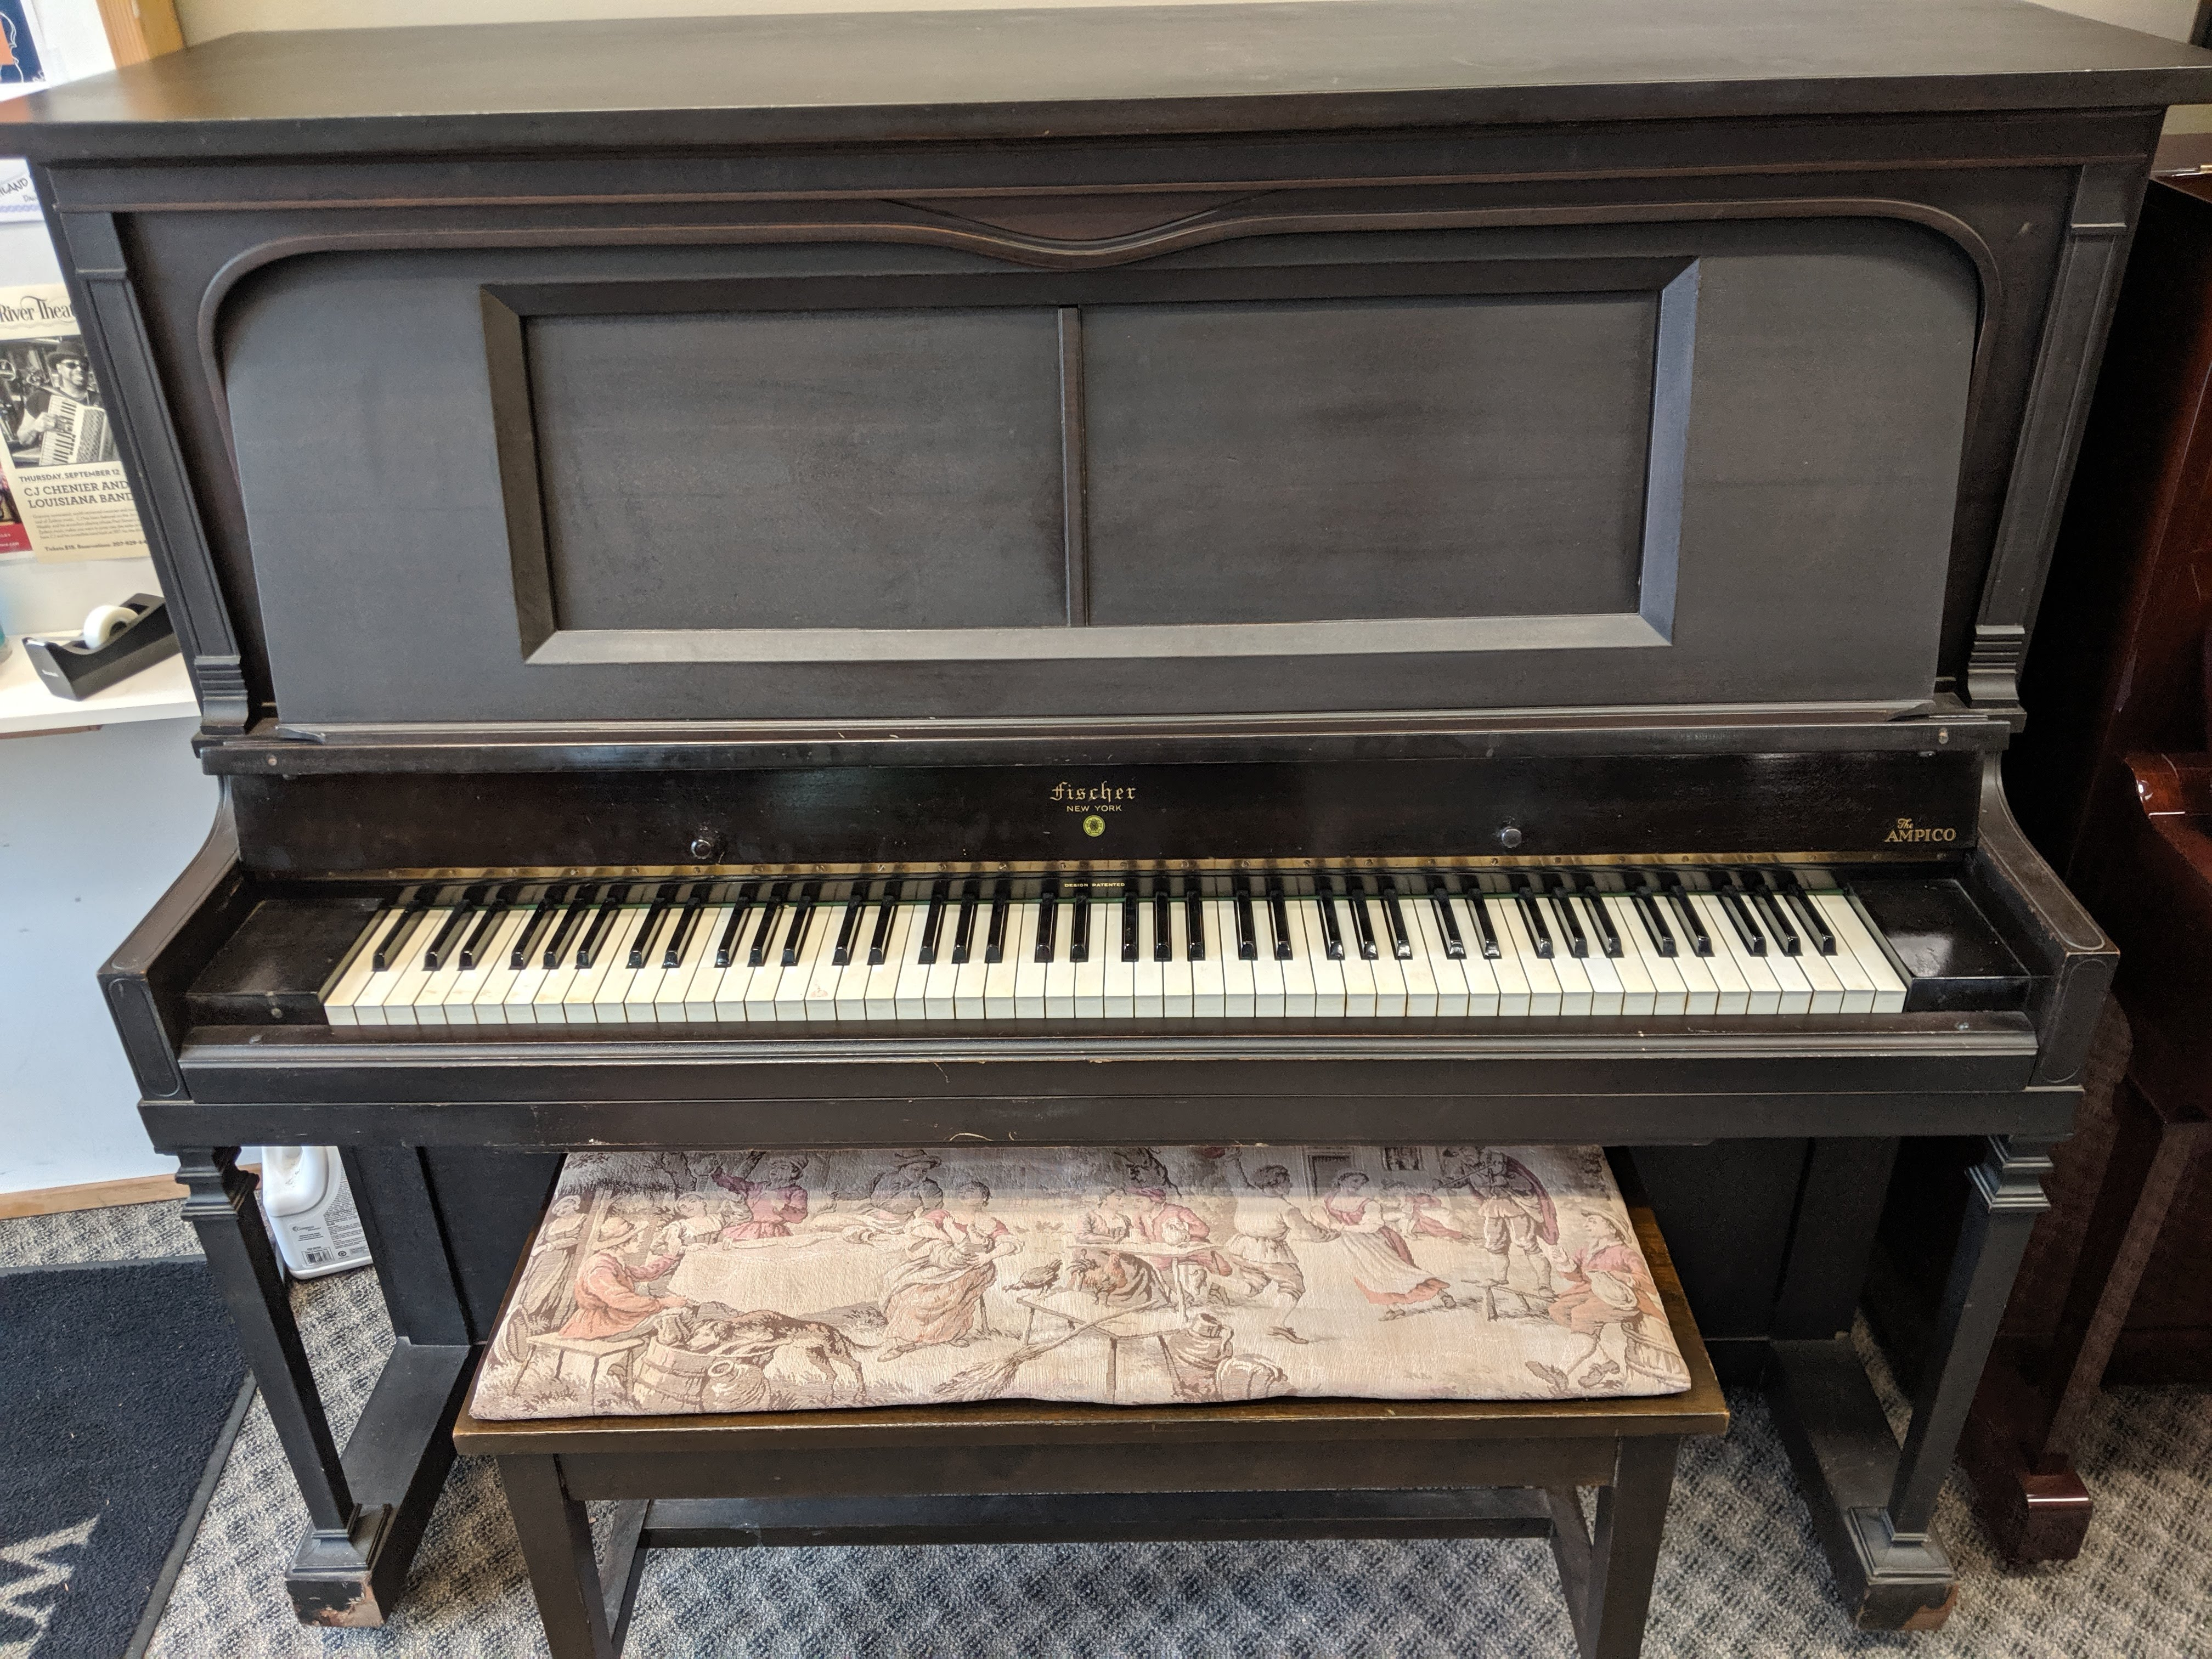 Fischer Vertical Piano with Ampico Reproducing Player